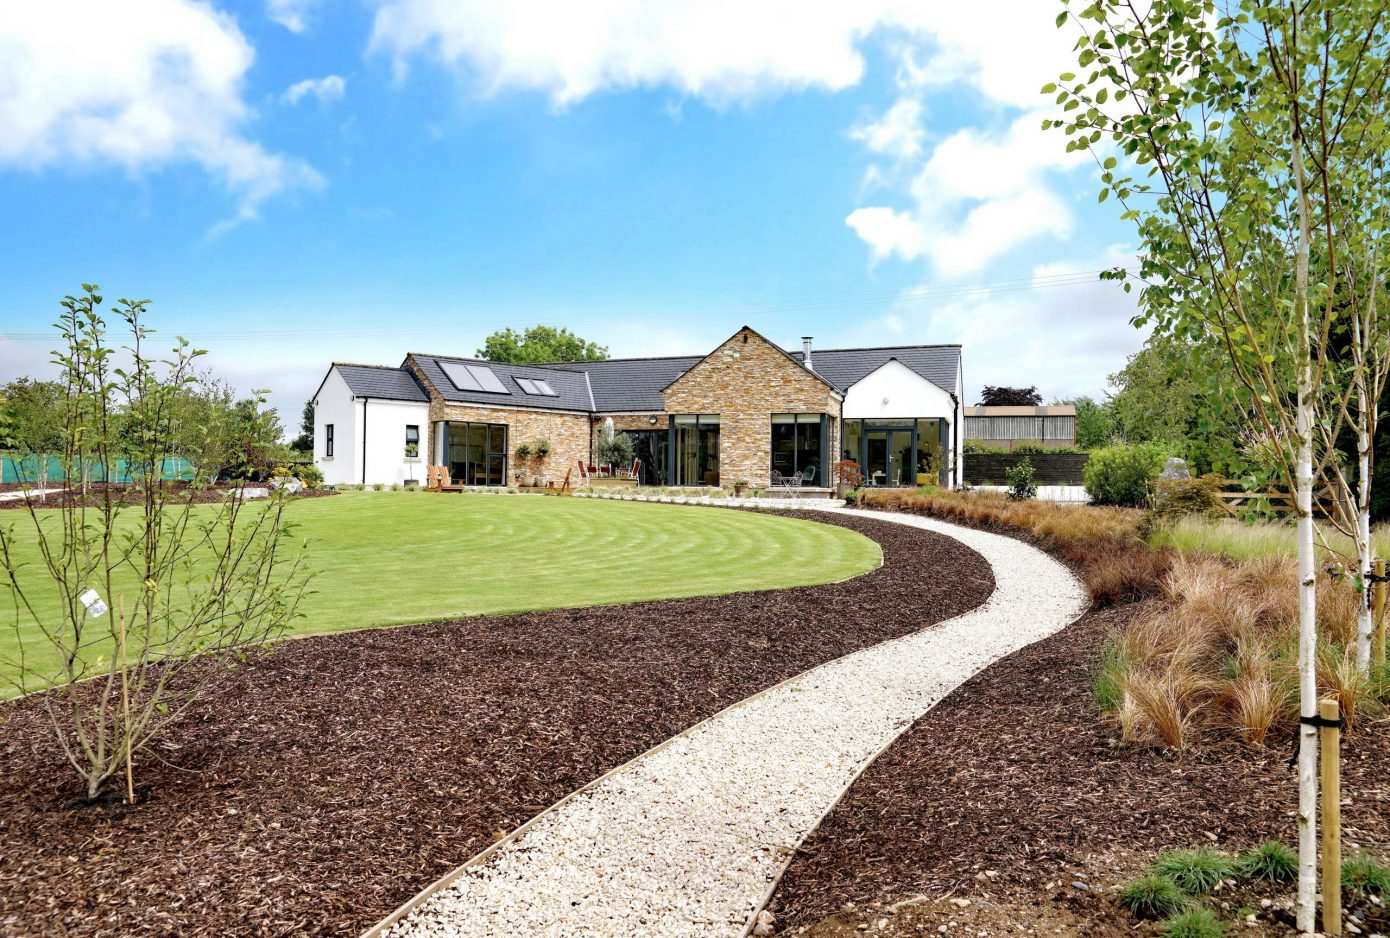 Inspiring Home in Armagh